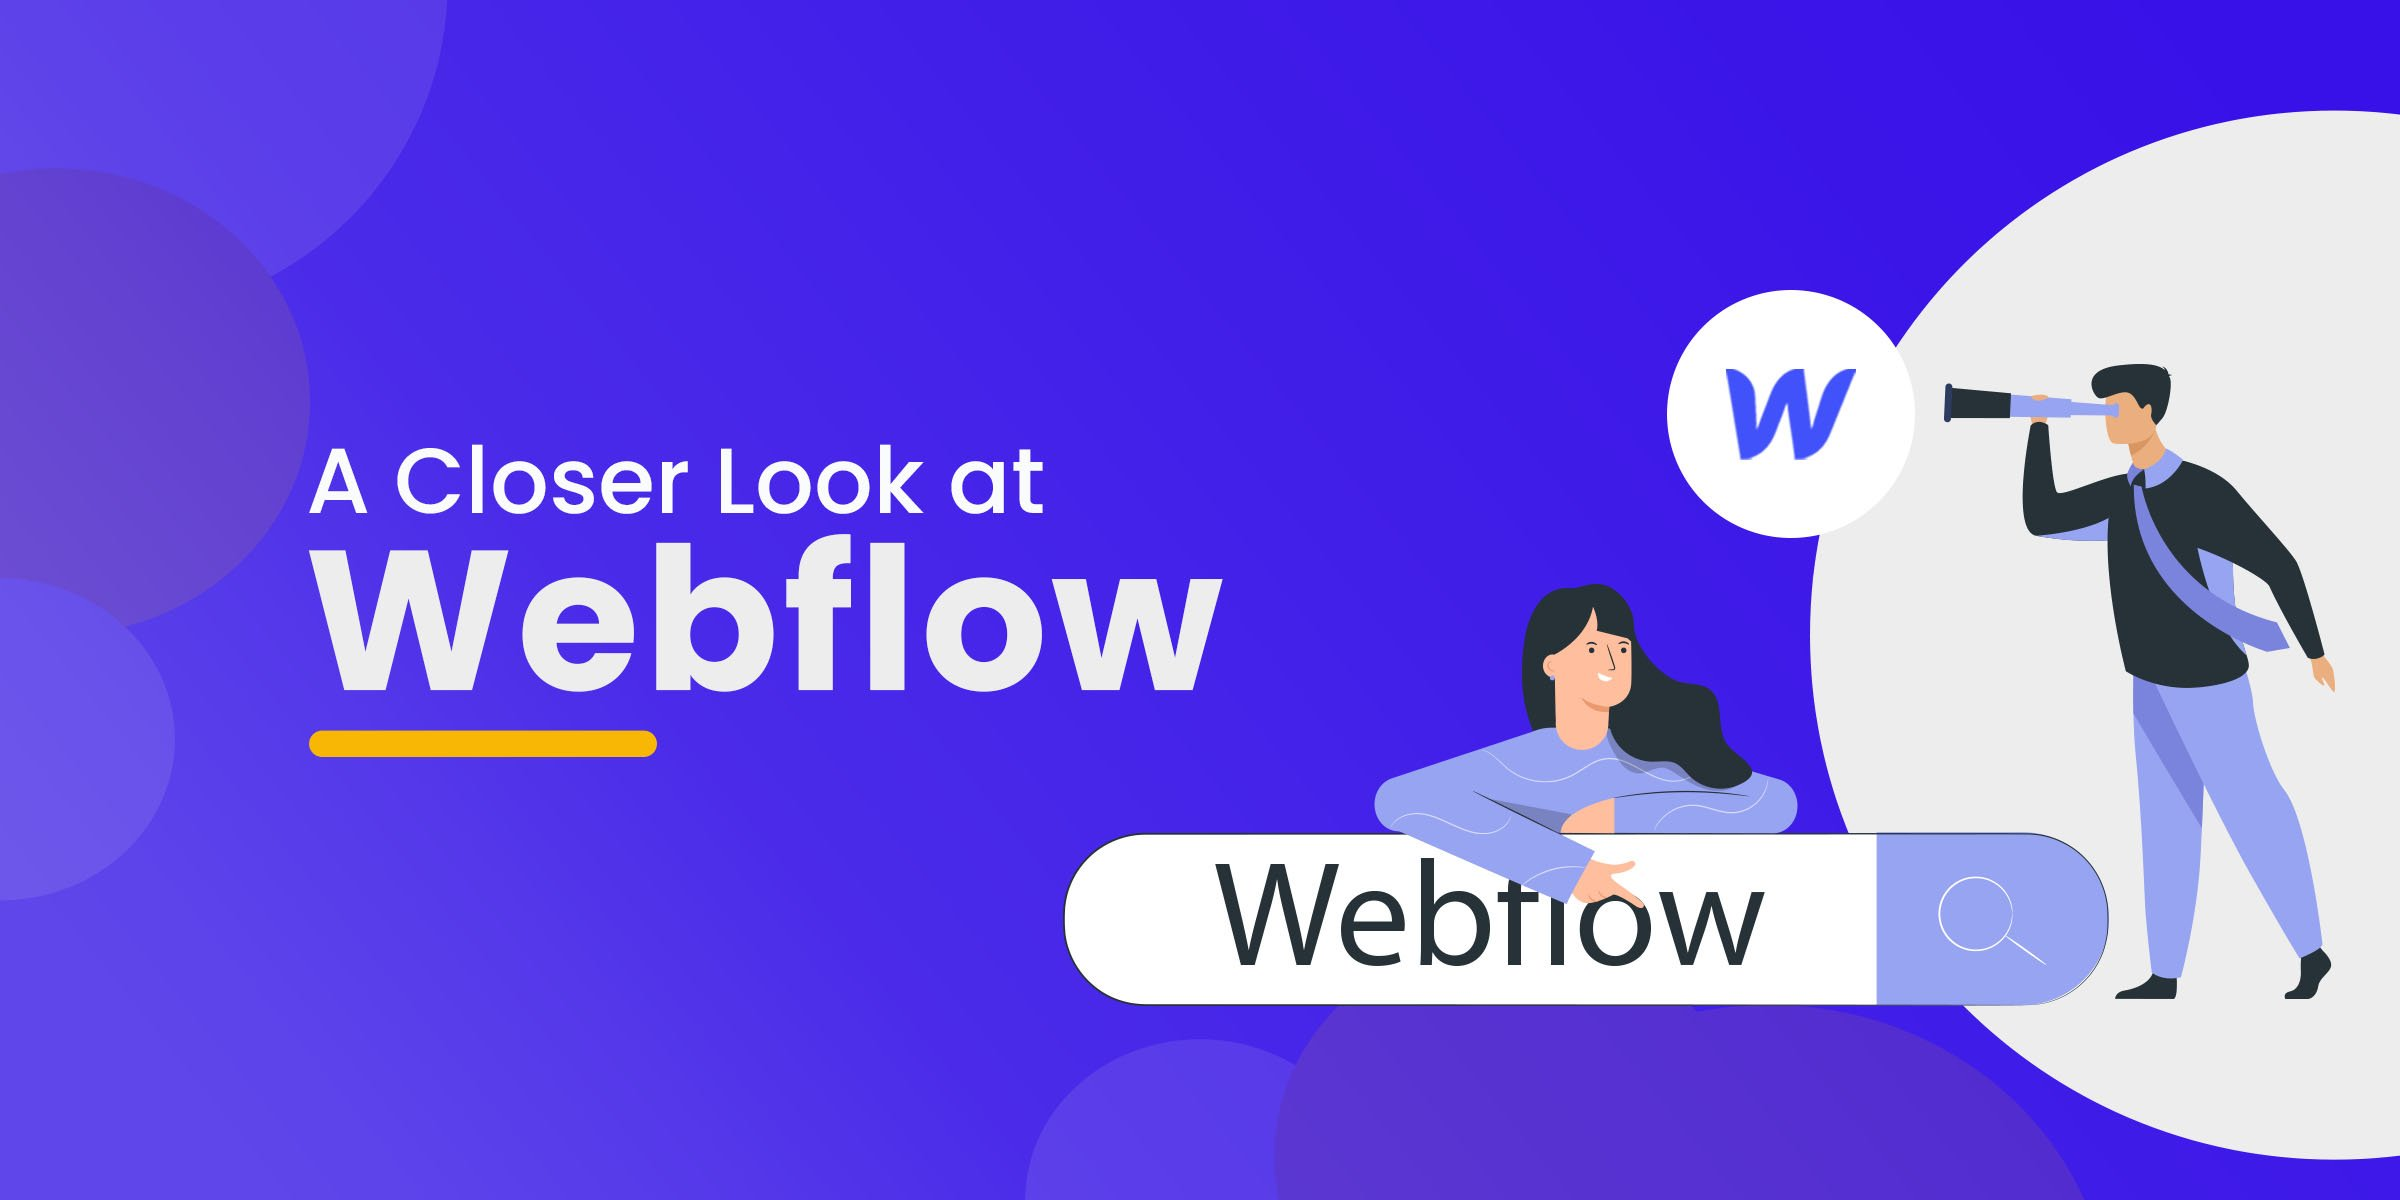 A Closer Look at Webflow